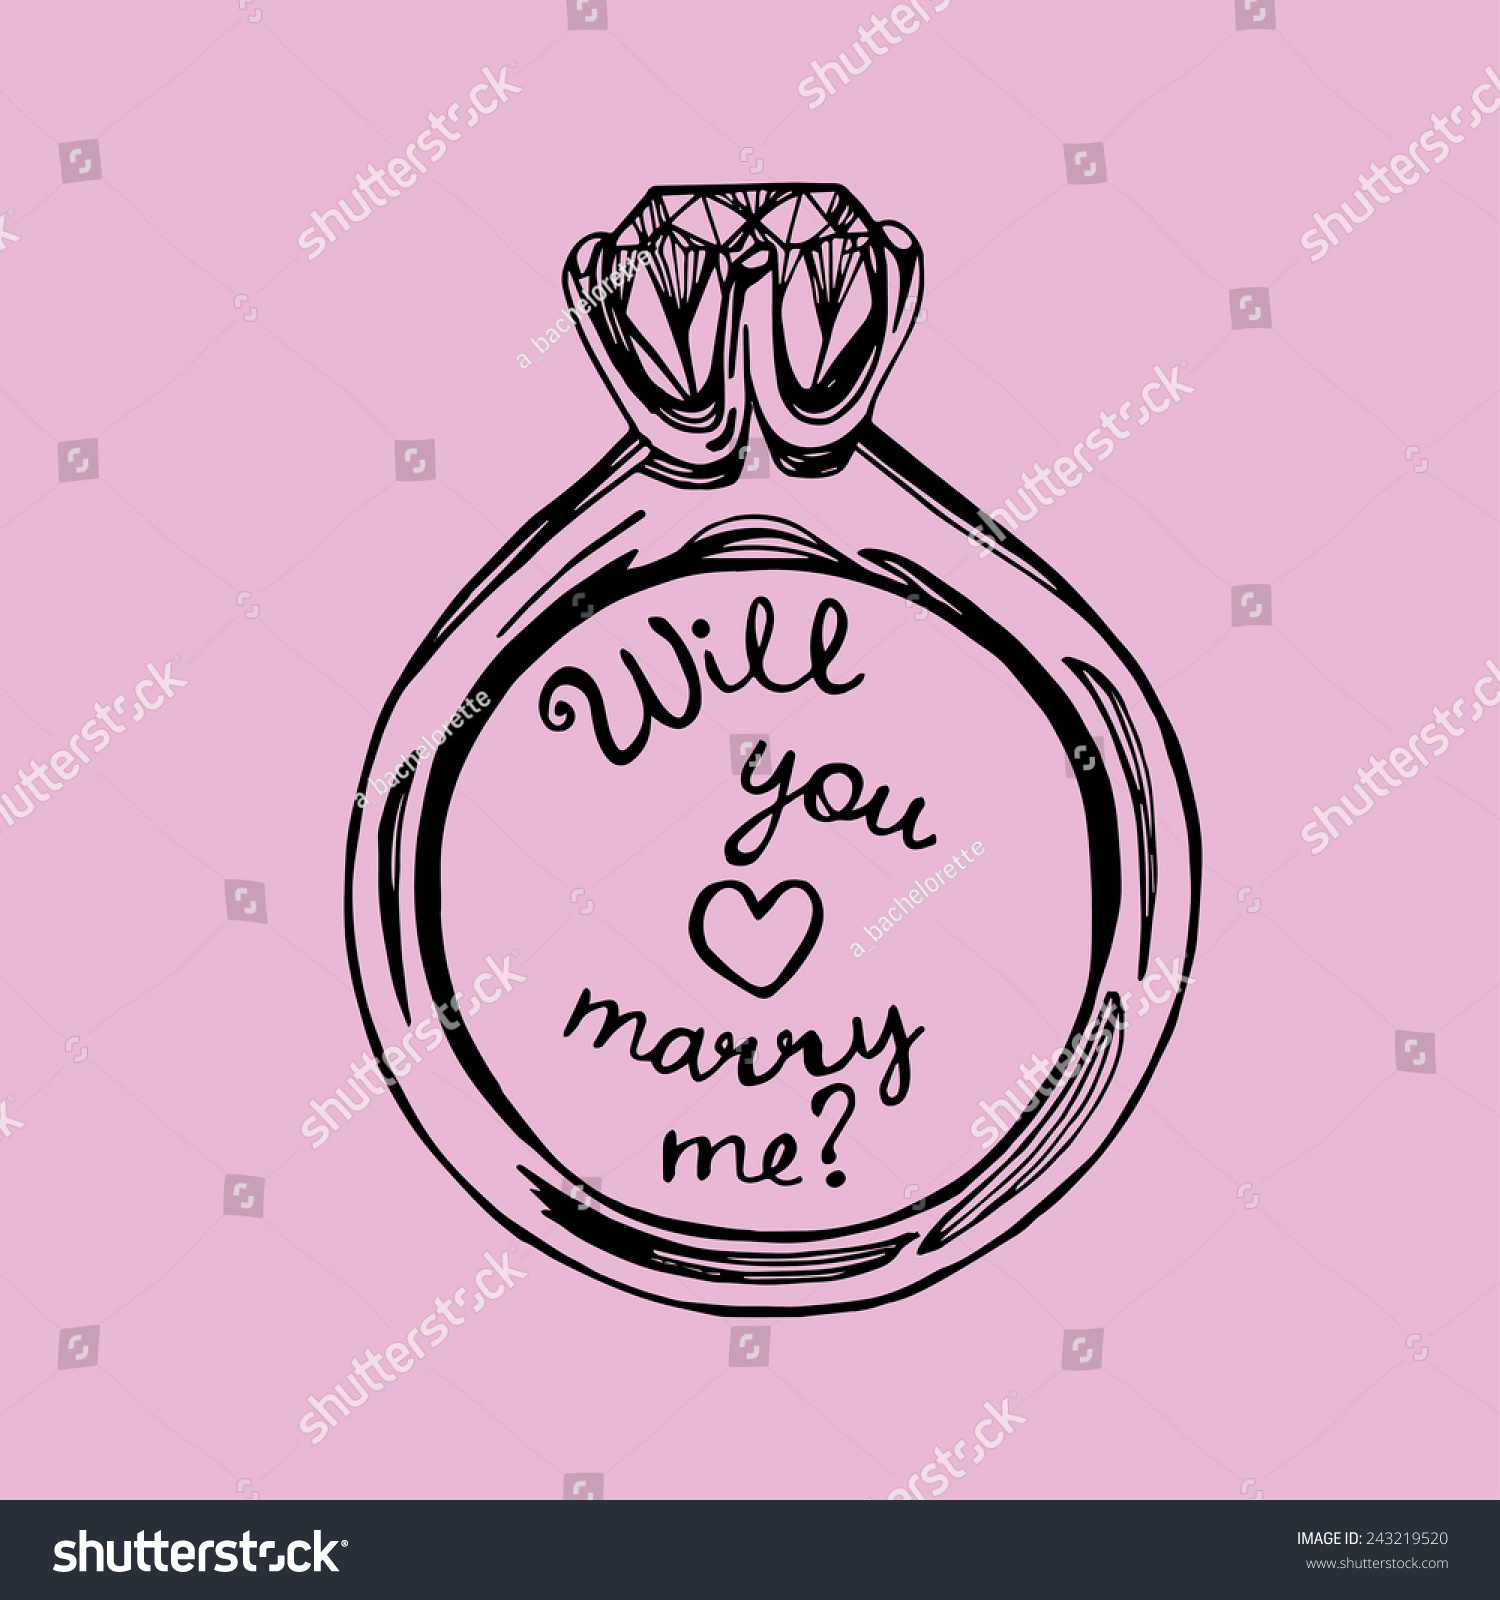 Royalty-free Hand drawn will you marry me wedding… #243219520 Stock ...